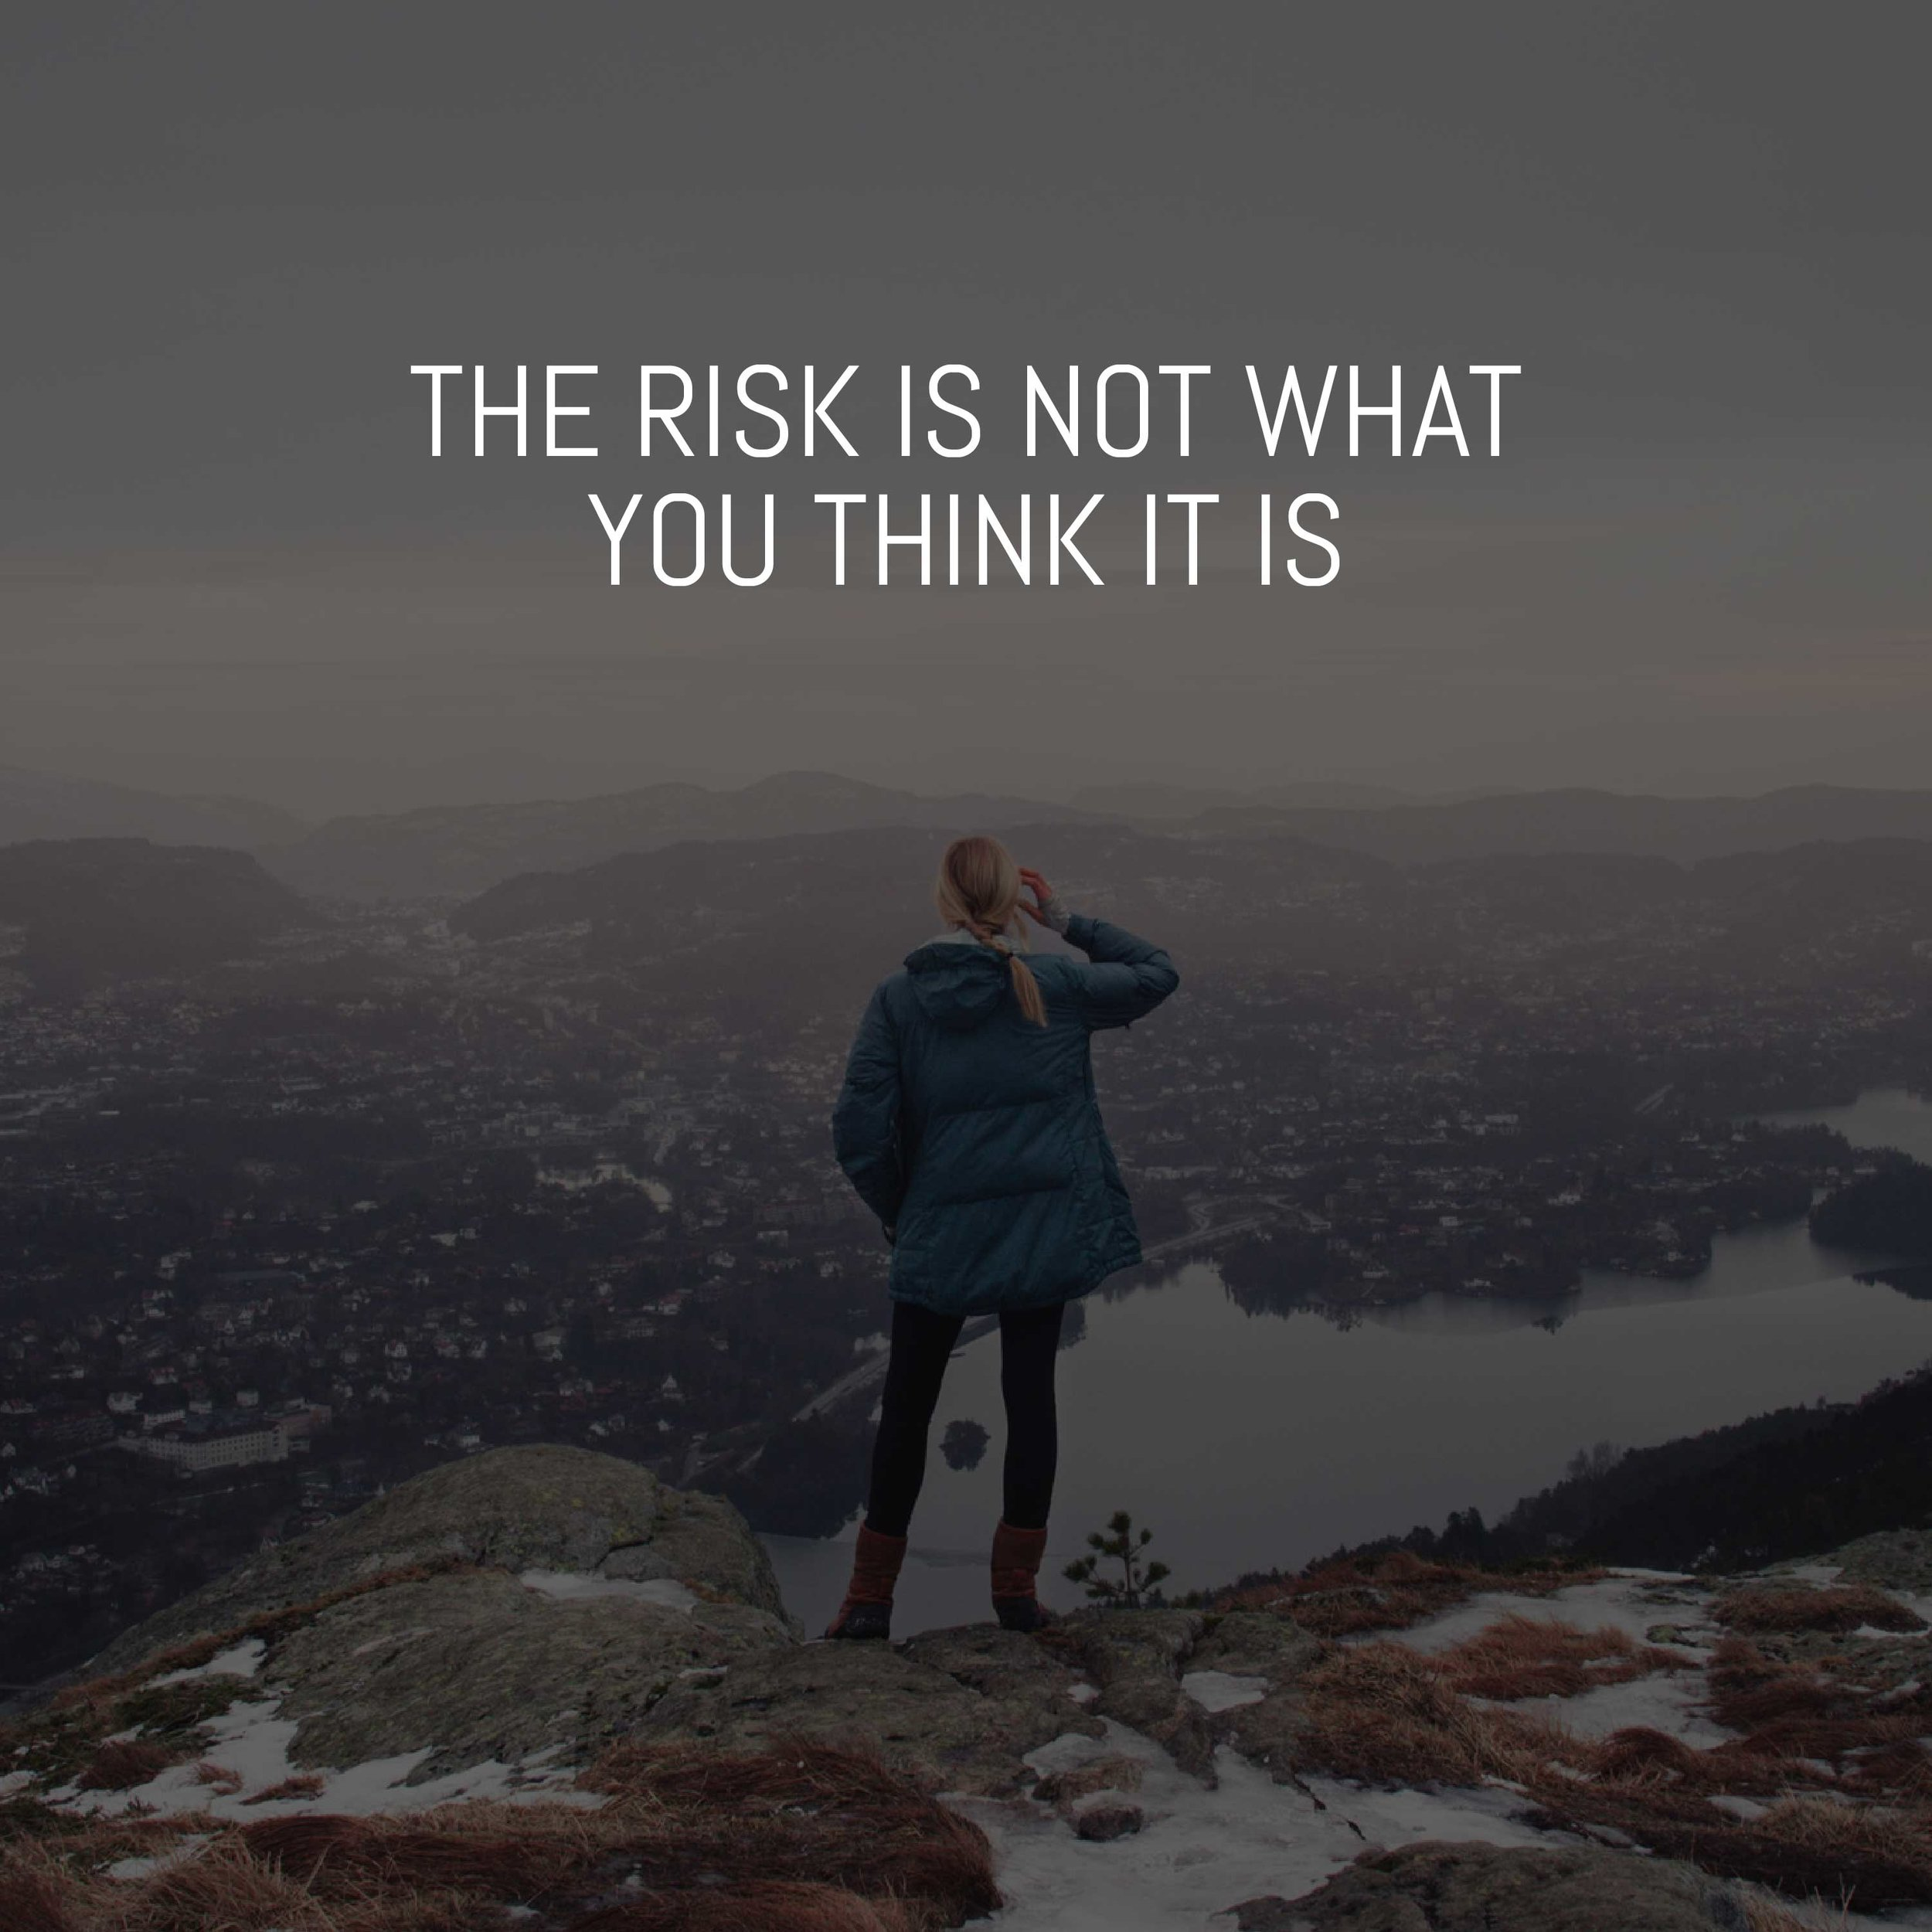 THE-RISK-IS-NOT-WHAT-YOU-THINK-IT-IS.jpg